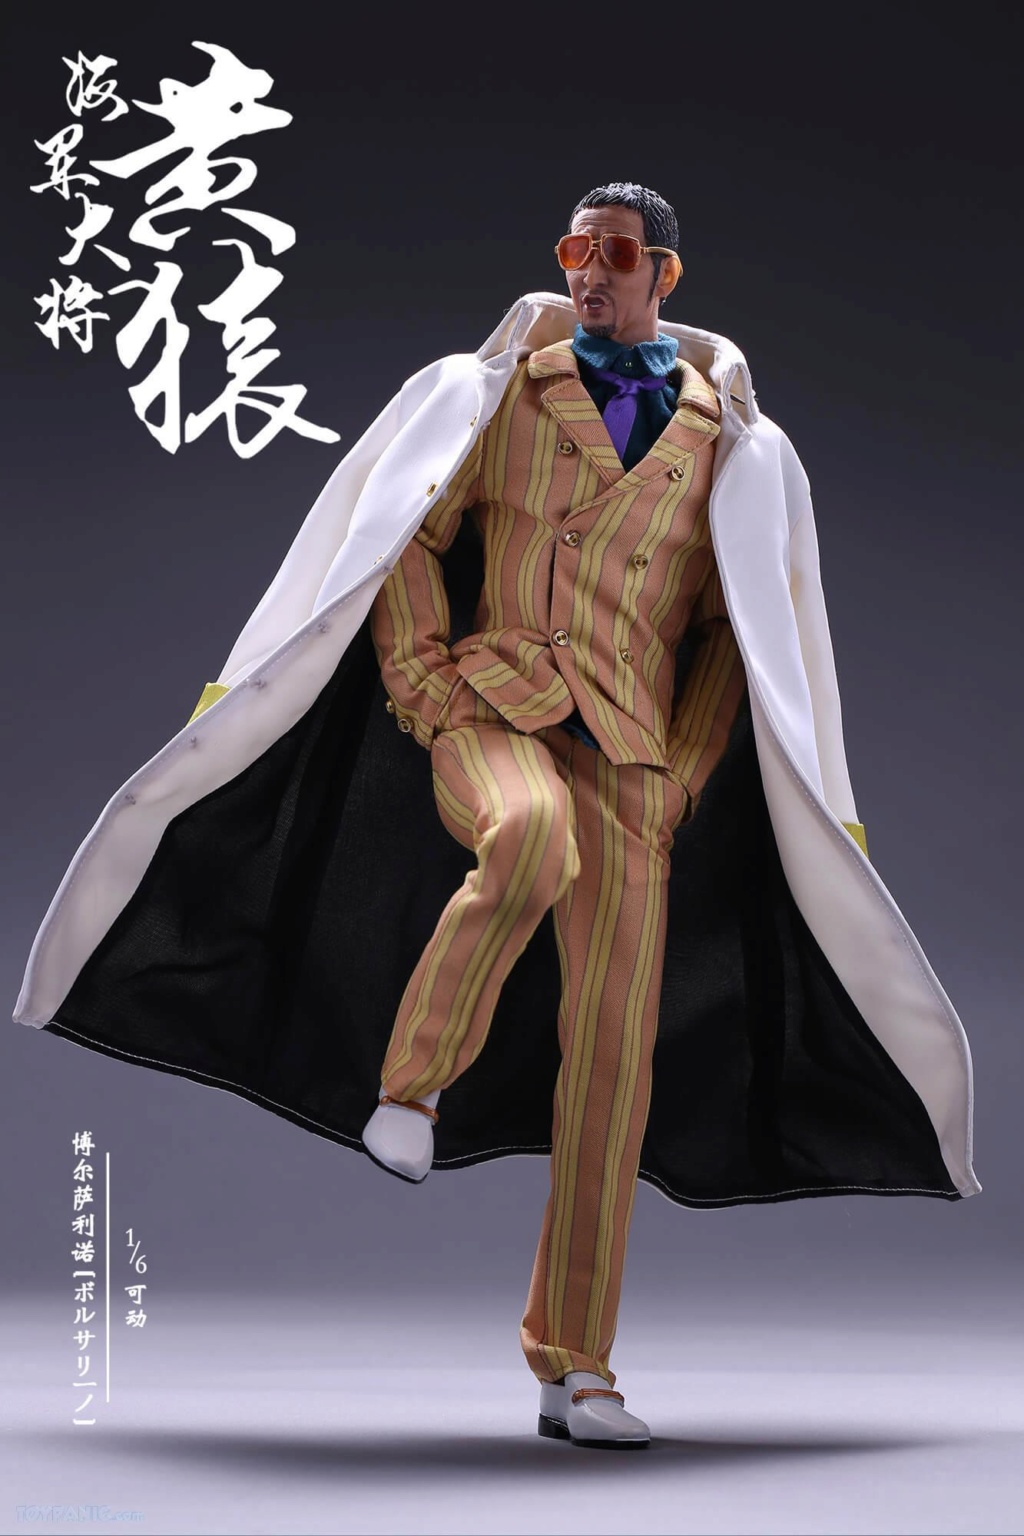 JokerToys - NEW PRODUCT: 1/6 Scale One Piece - Borsalino (Kizaru Yellow Monkey)  From JOKER TOYS  Code: JOK1810201801 10192043